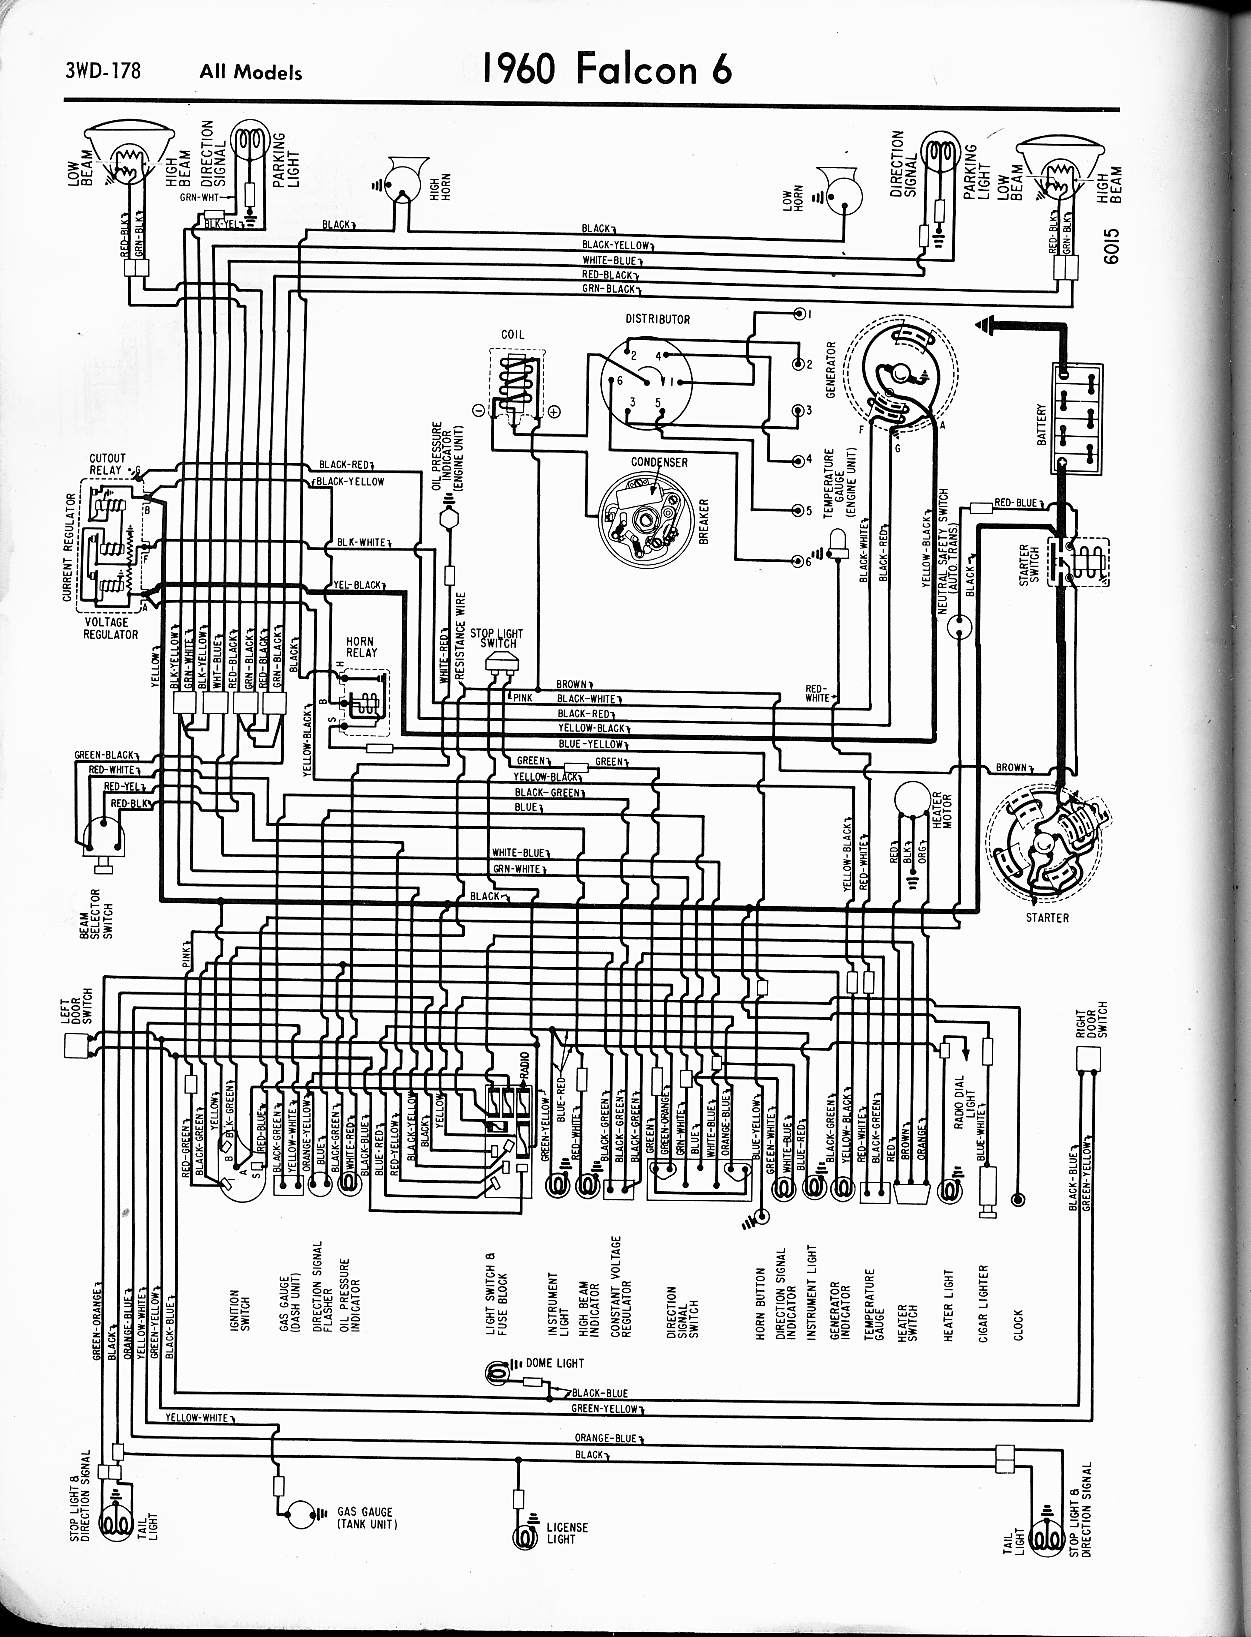 57-65 ford wiring diagrams  the old car manual project